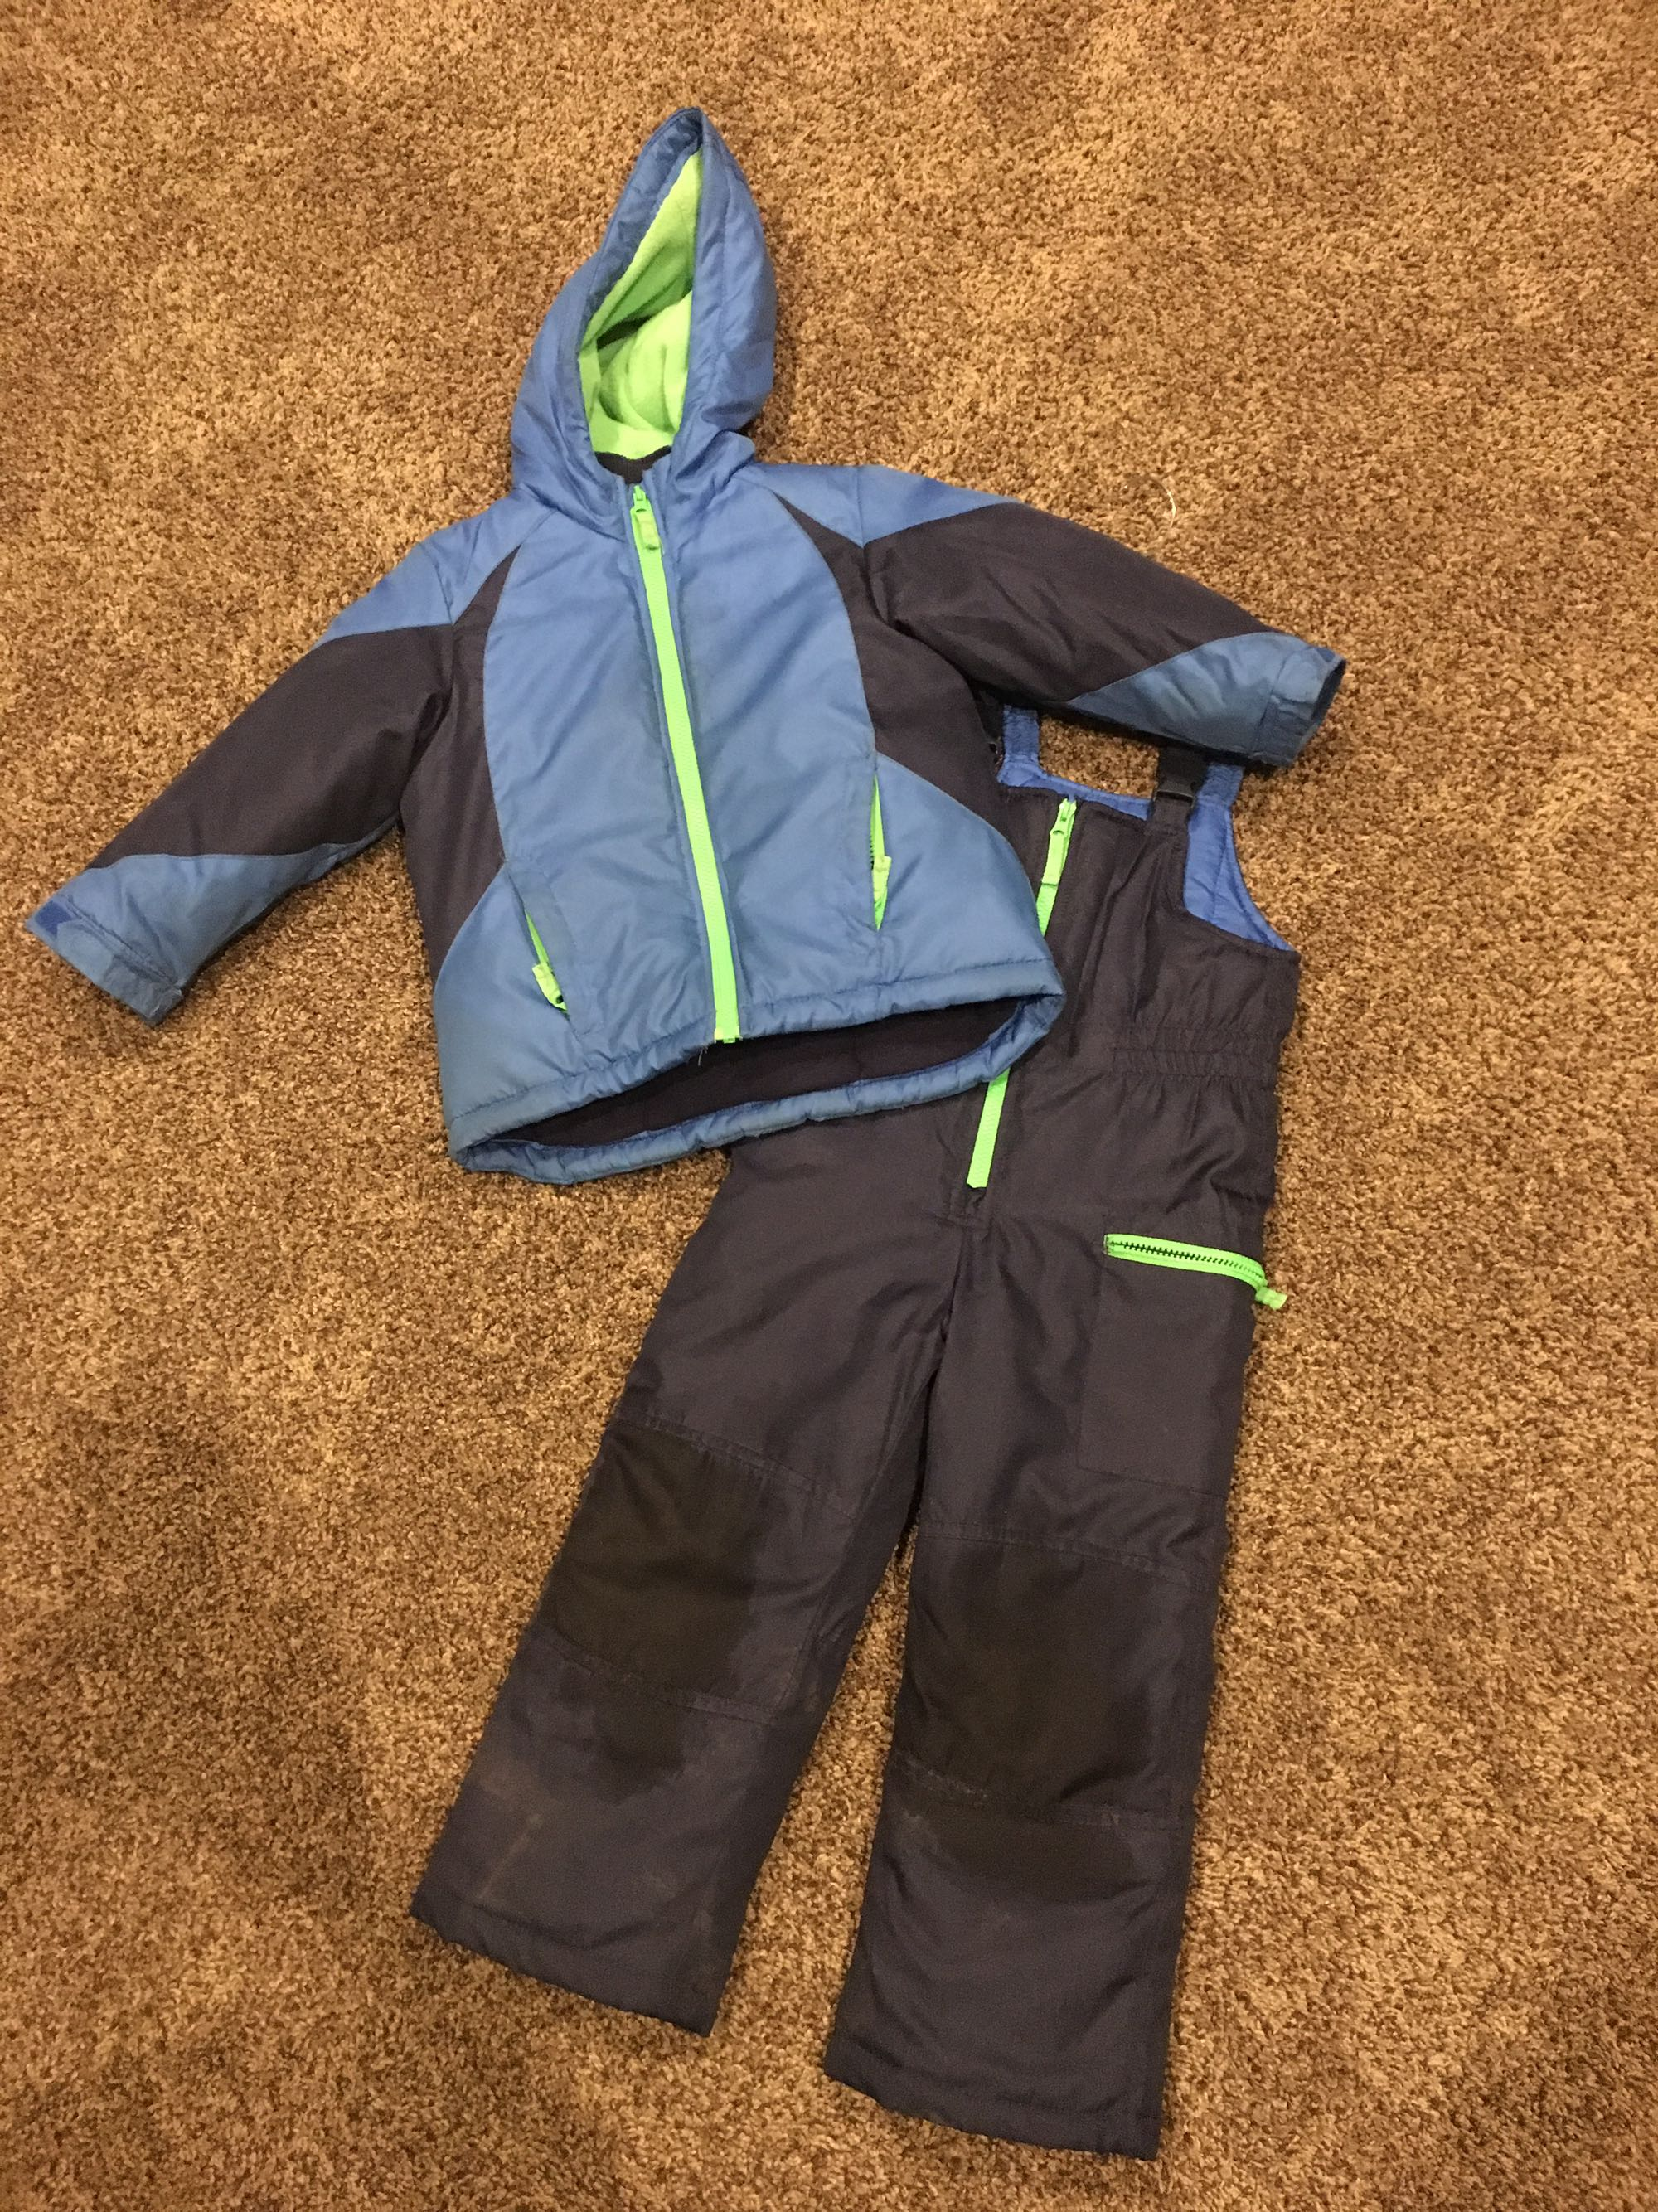 Boys Size 4 Carters Snow Suit